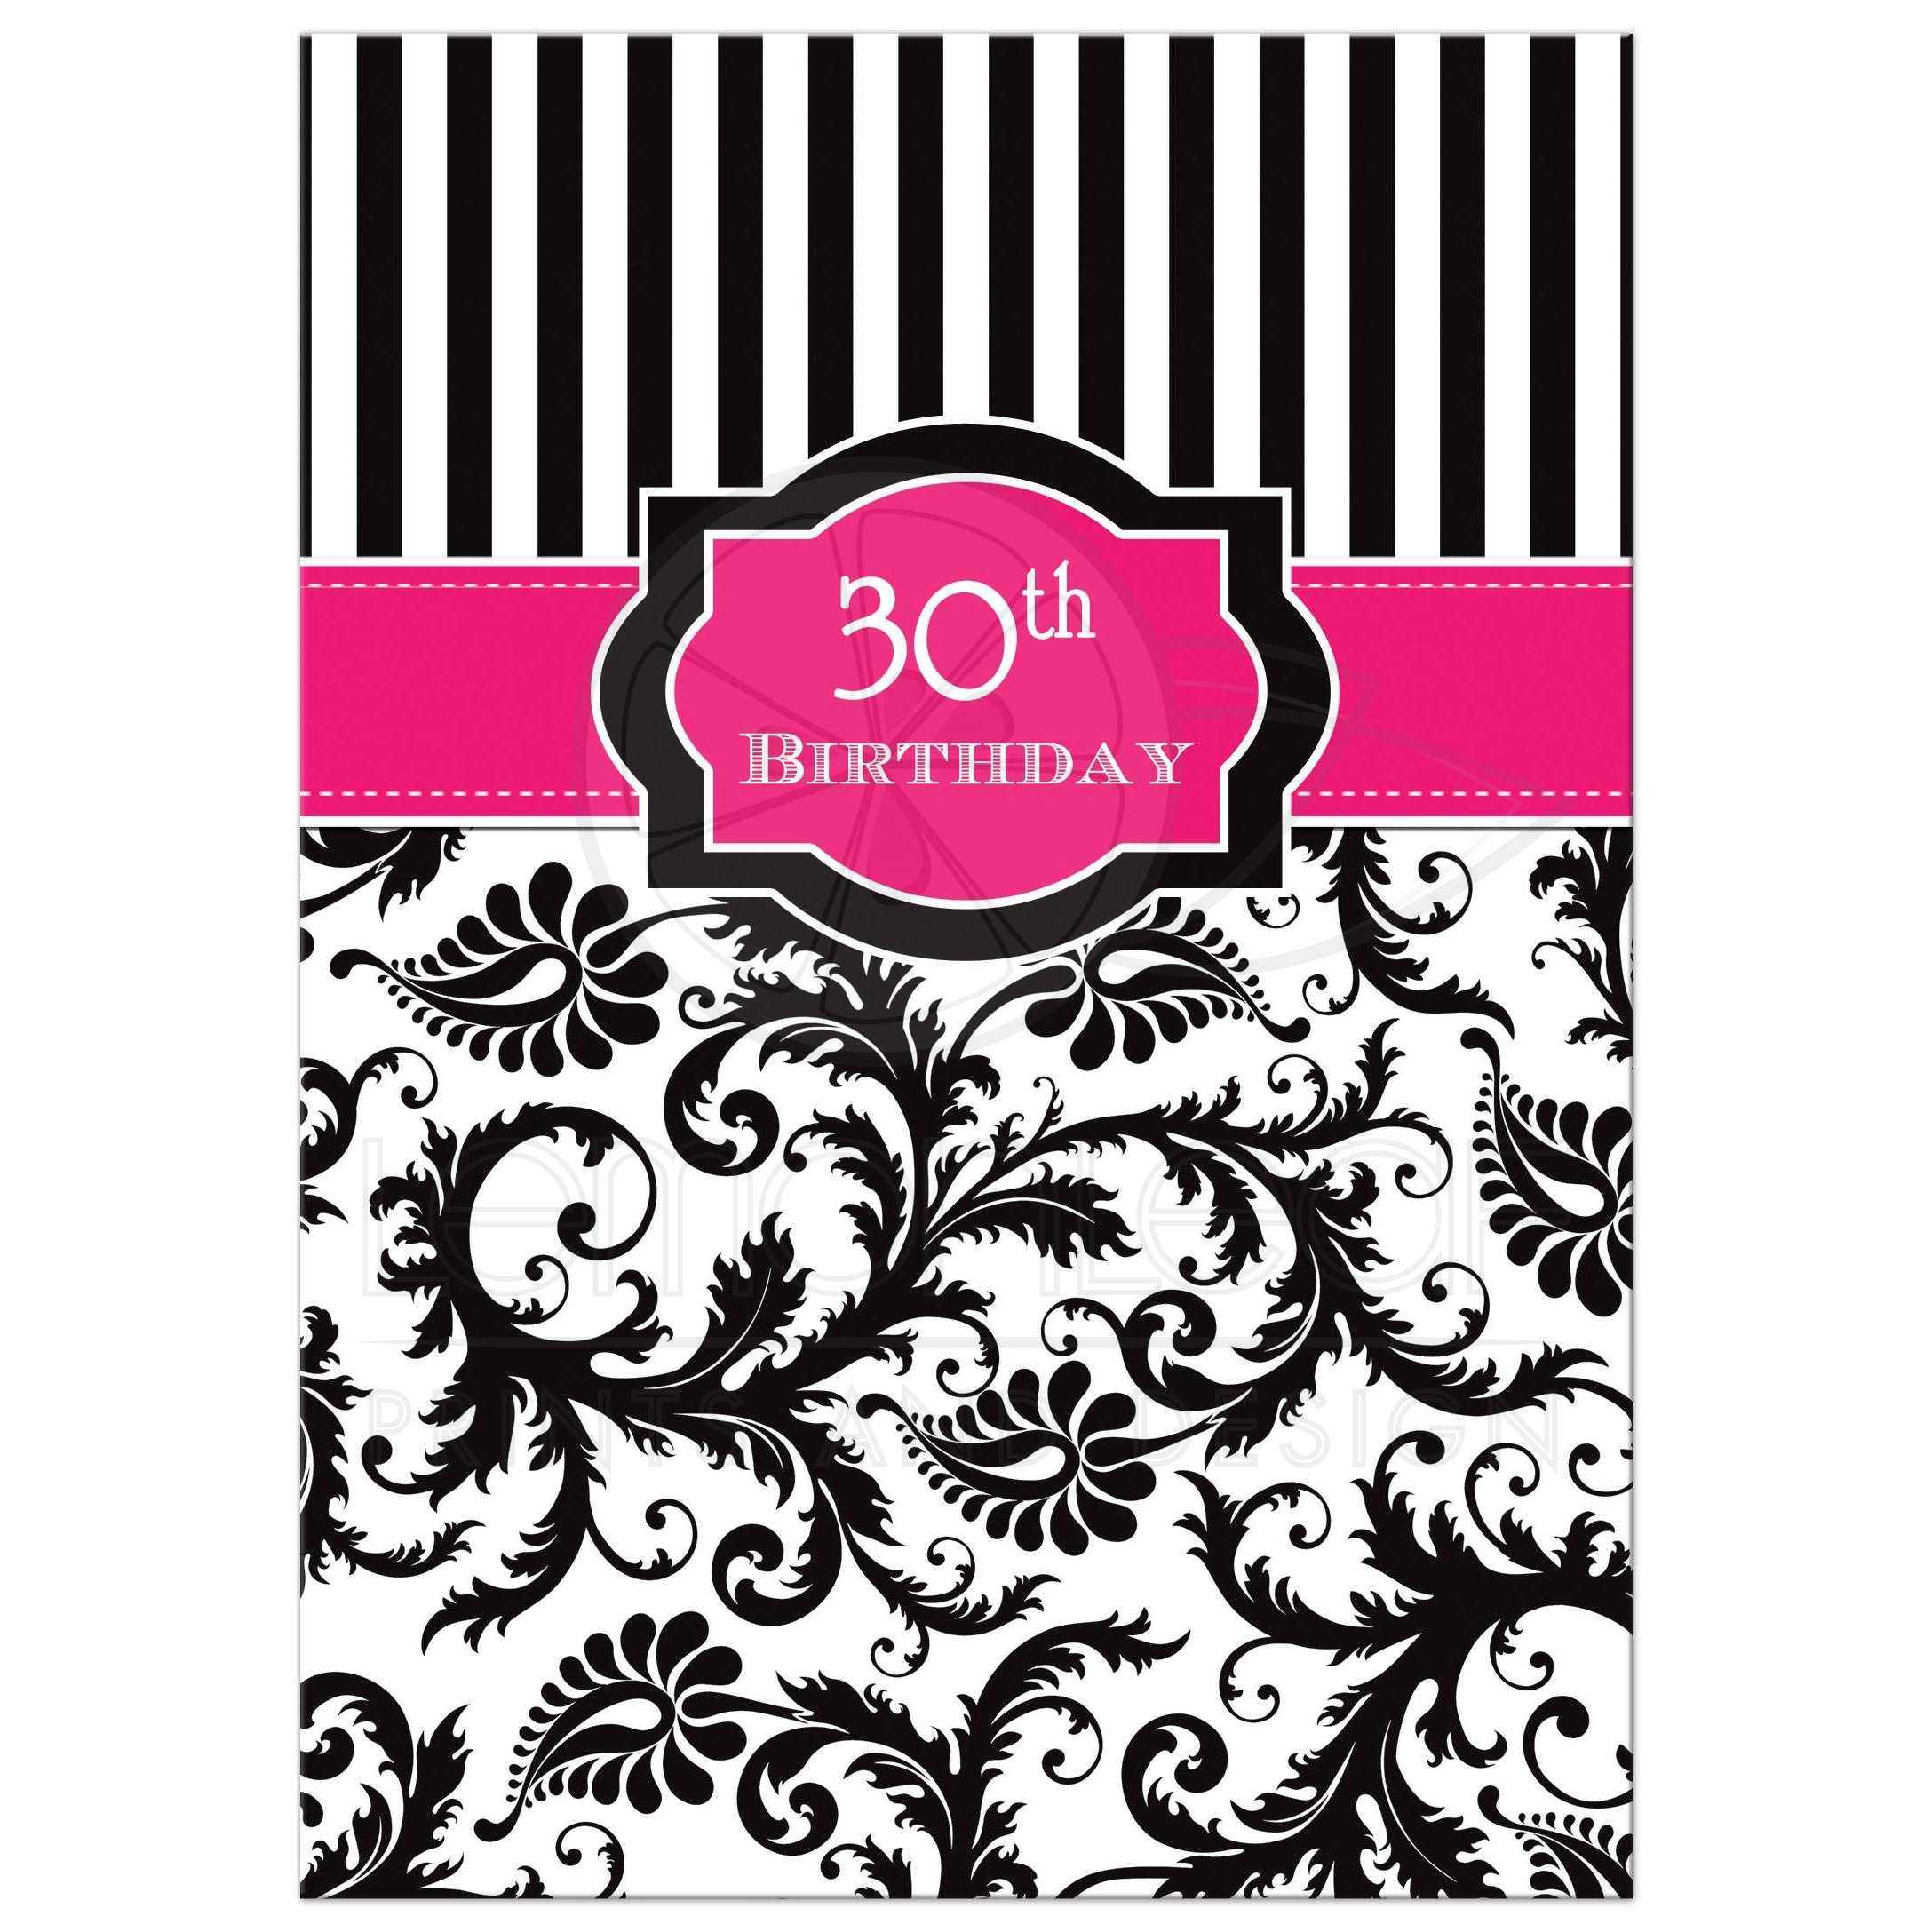 30th birthday invitation hot pink black white stripes floral 30th birthday party invitation in pink black and white stripes with damask filmwisefo